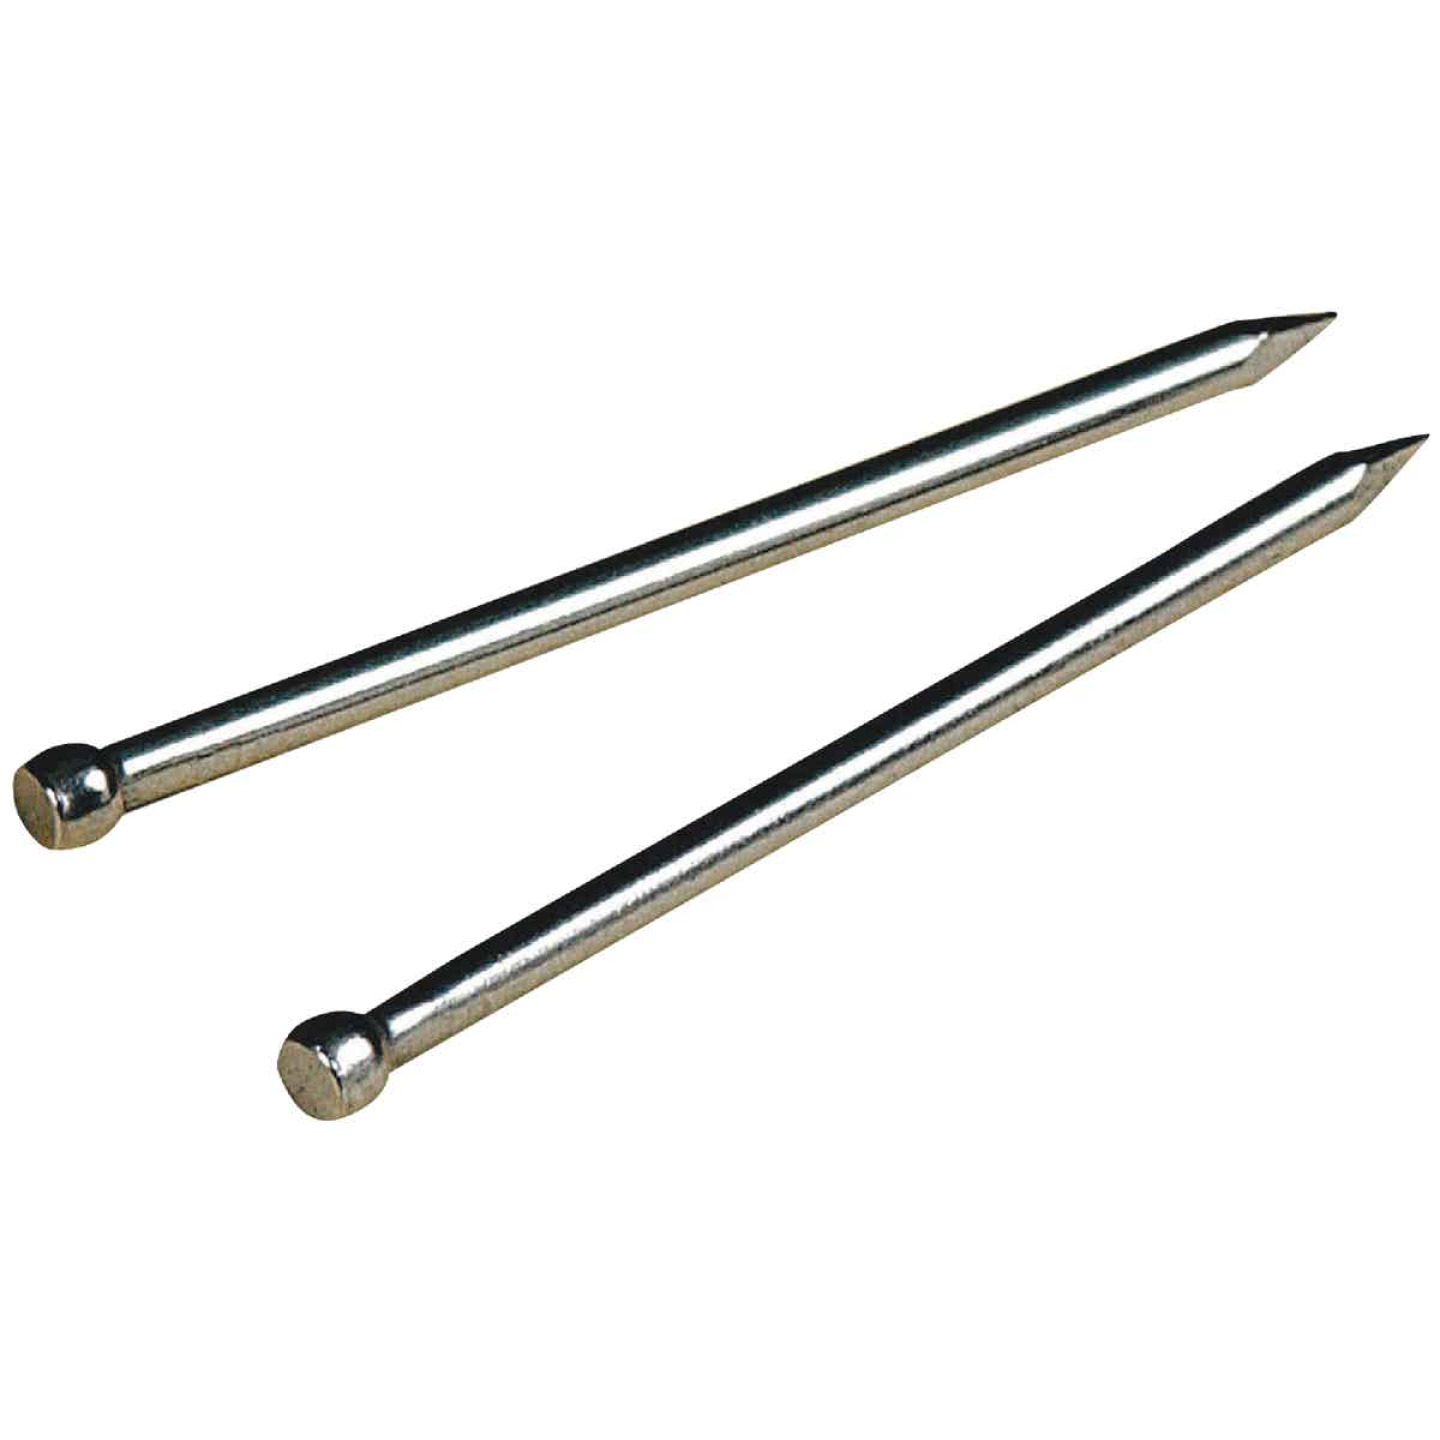 Hillman Anchor Wire 3/4 In. 17 ga 2 Oz. Stainless Steel Brad Image 1